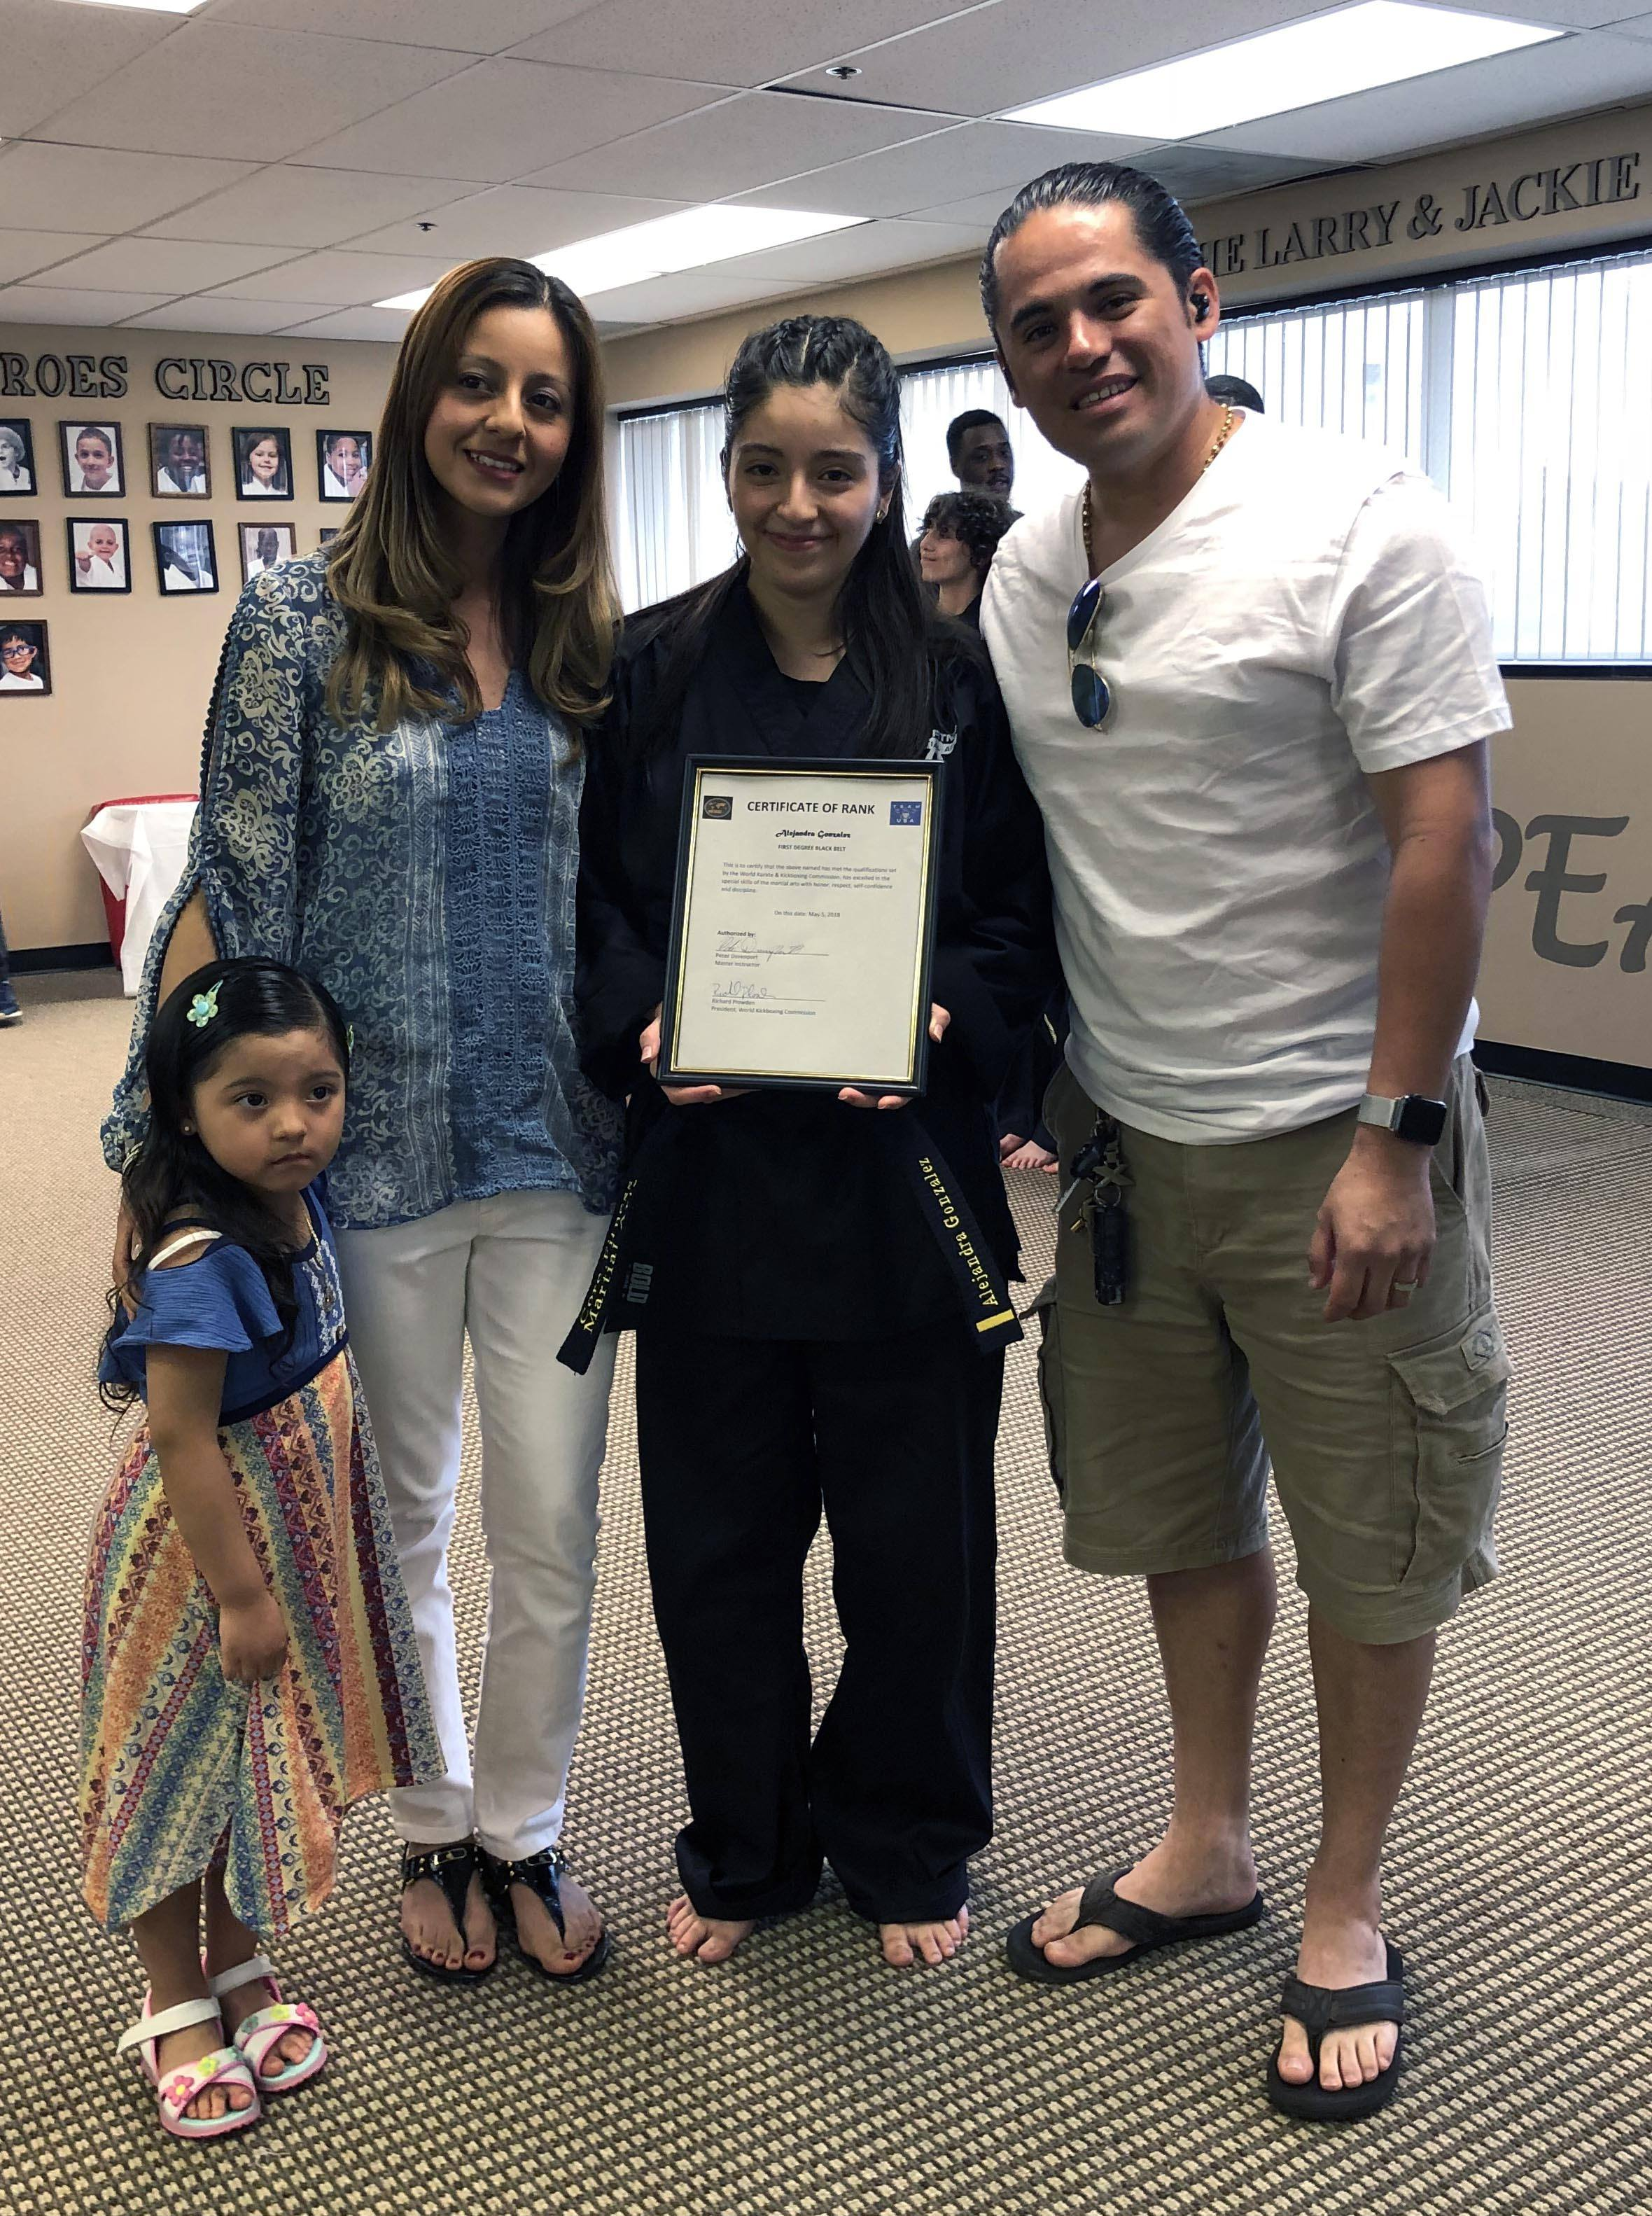 (L to R) Megan Gonzalez (sister), Noemi Rivera (mother), Alejandra Gonzalez, Alejandro Gonzalez (father). Alejandra received her first-degree black belt in karate in May 2018.